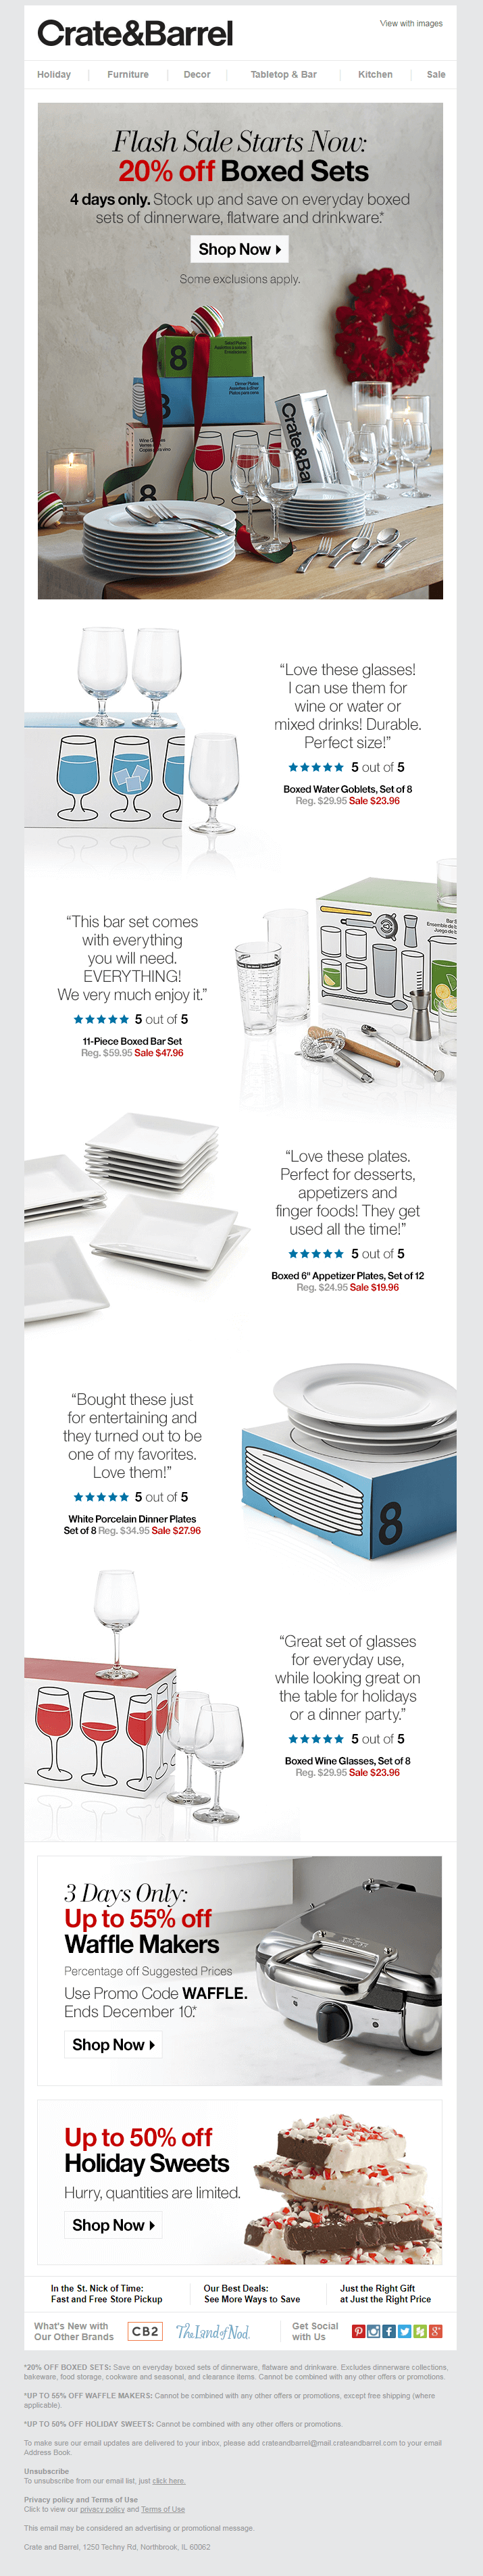 crate&barrel email